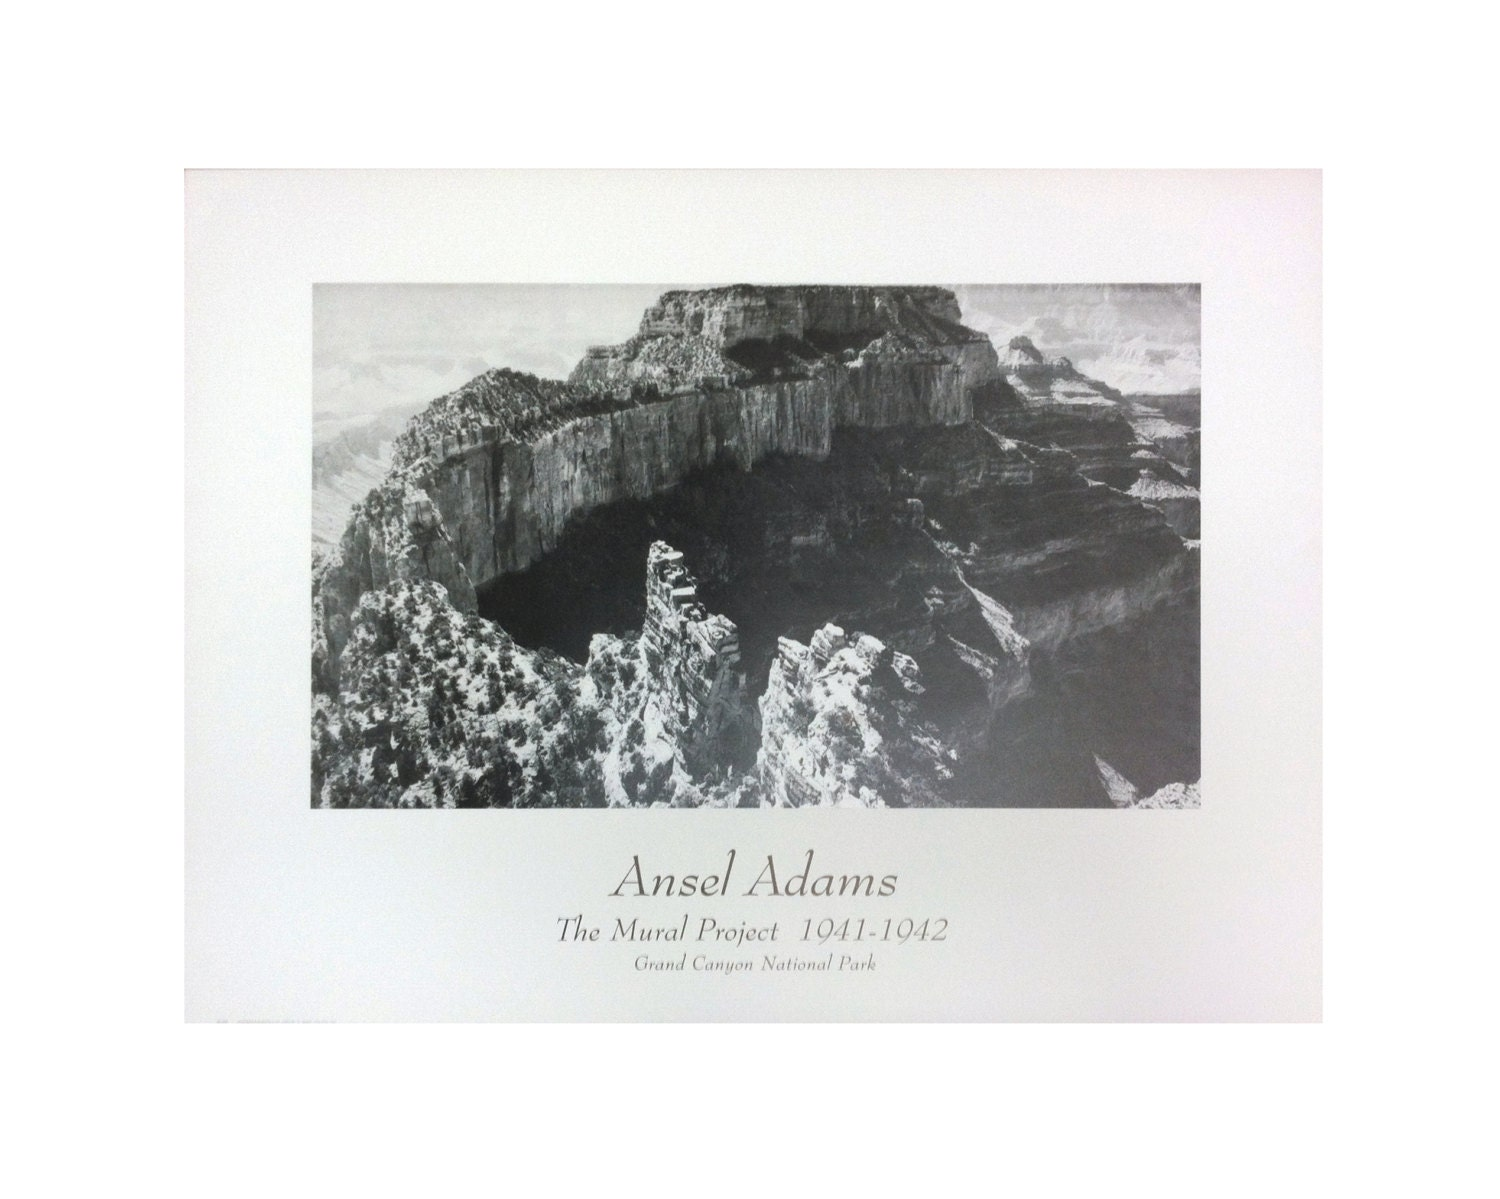 Vintage ansel adams grand canyon national park the for Ansel adams the mural project 1941 to 1942